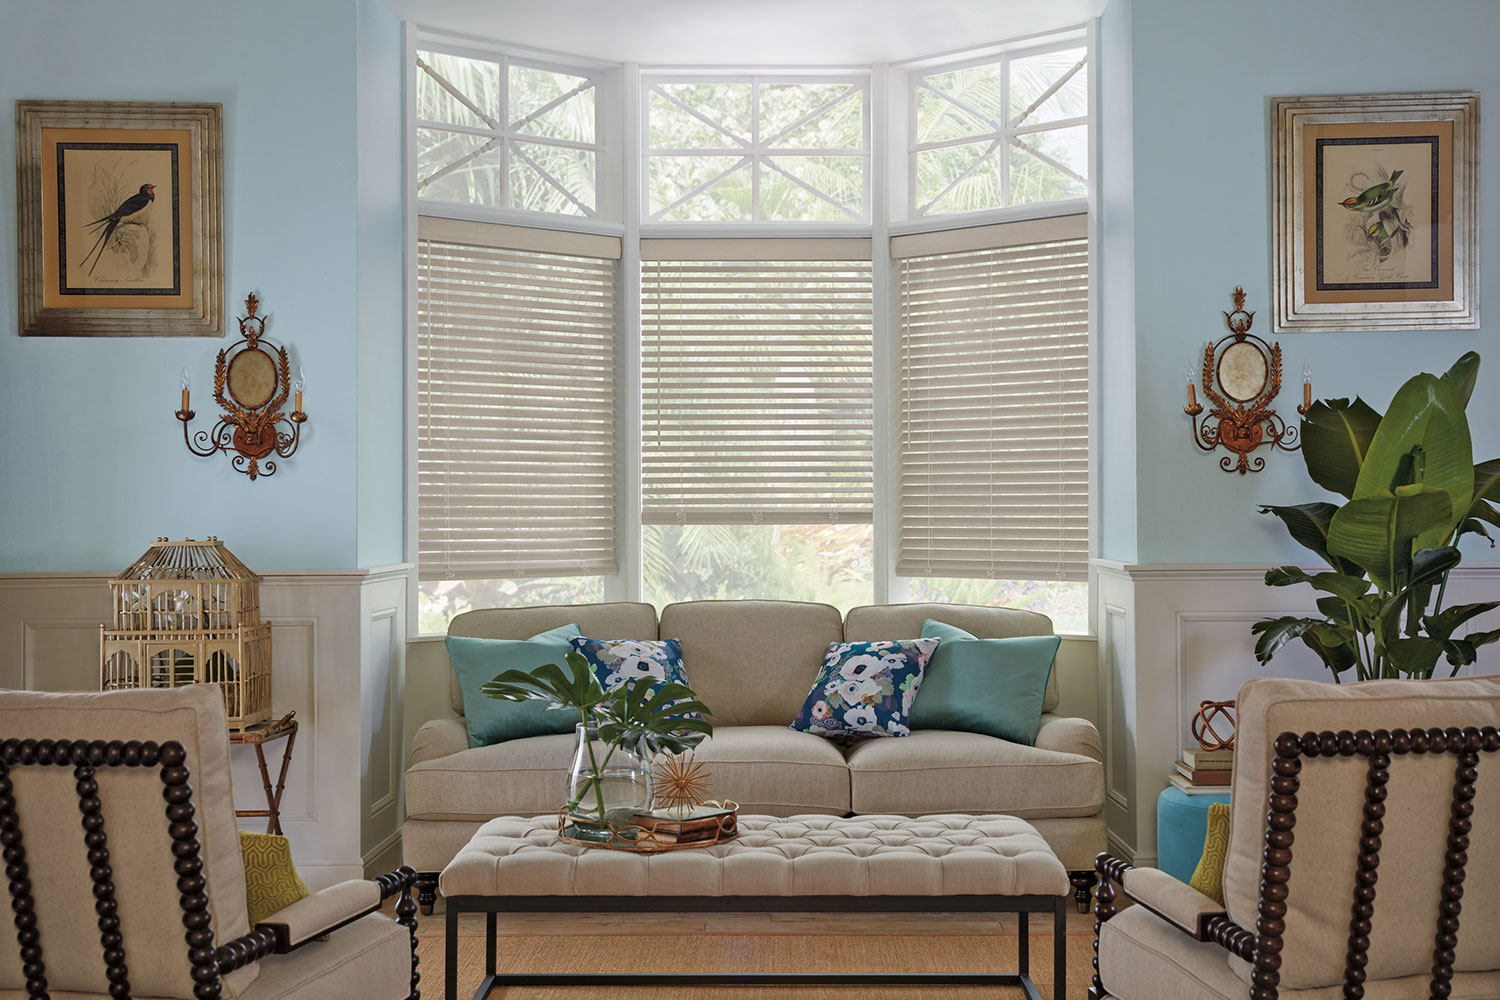 advantage mpls gray img in woodblinds minneapolis wood alta and blinds shutters